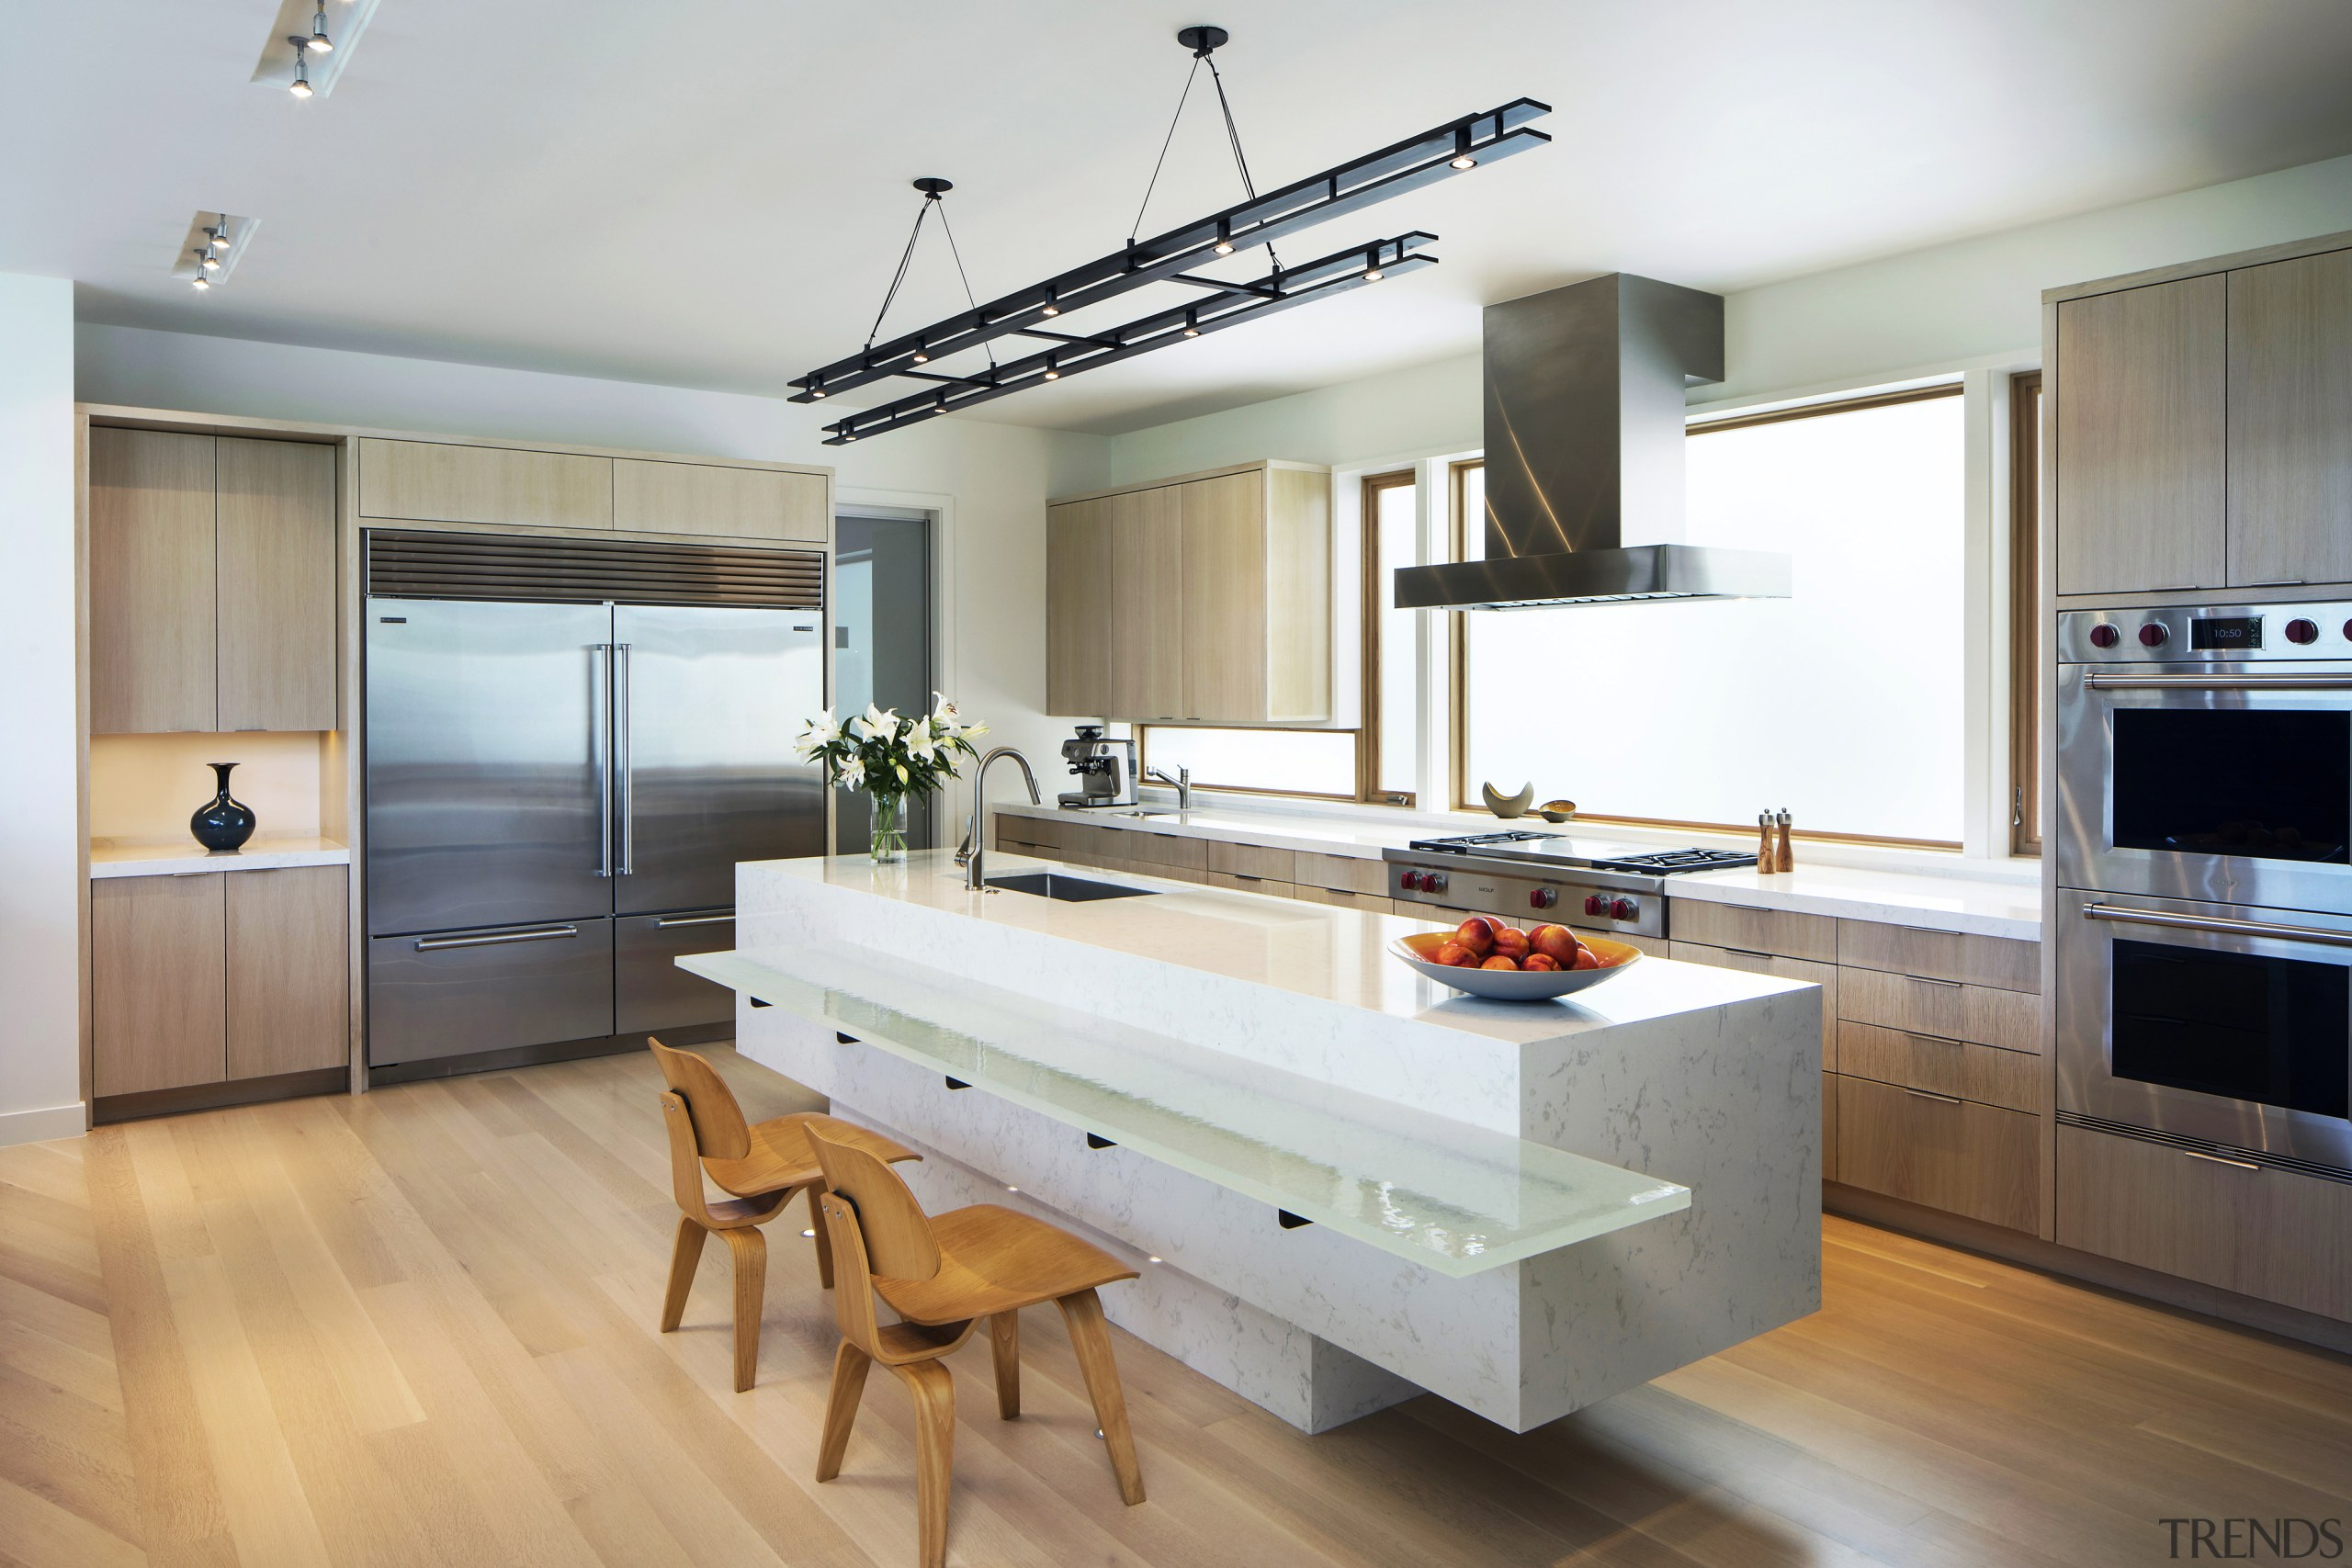 A 2.5cm-thick glass counter sits at dining table architecture, building, cabinetry, countertop, benchtop, floor, flooring, furniture, hardwood, home, house, kitchen, wood flooring, timber, appliances, Nils Finne,  Finne Architects, glass counter